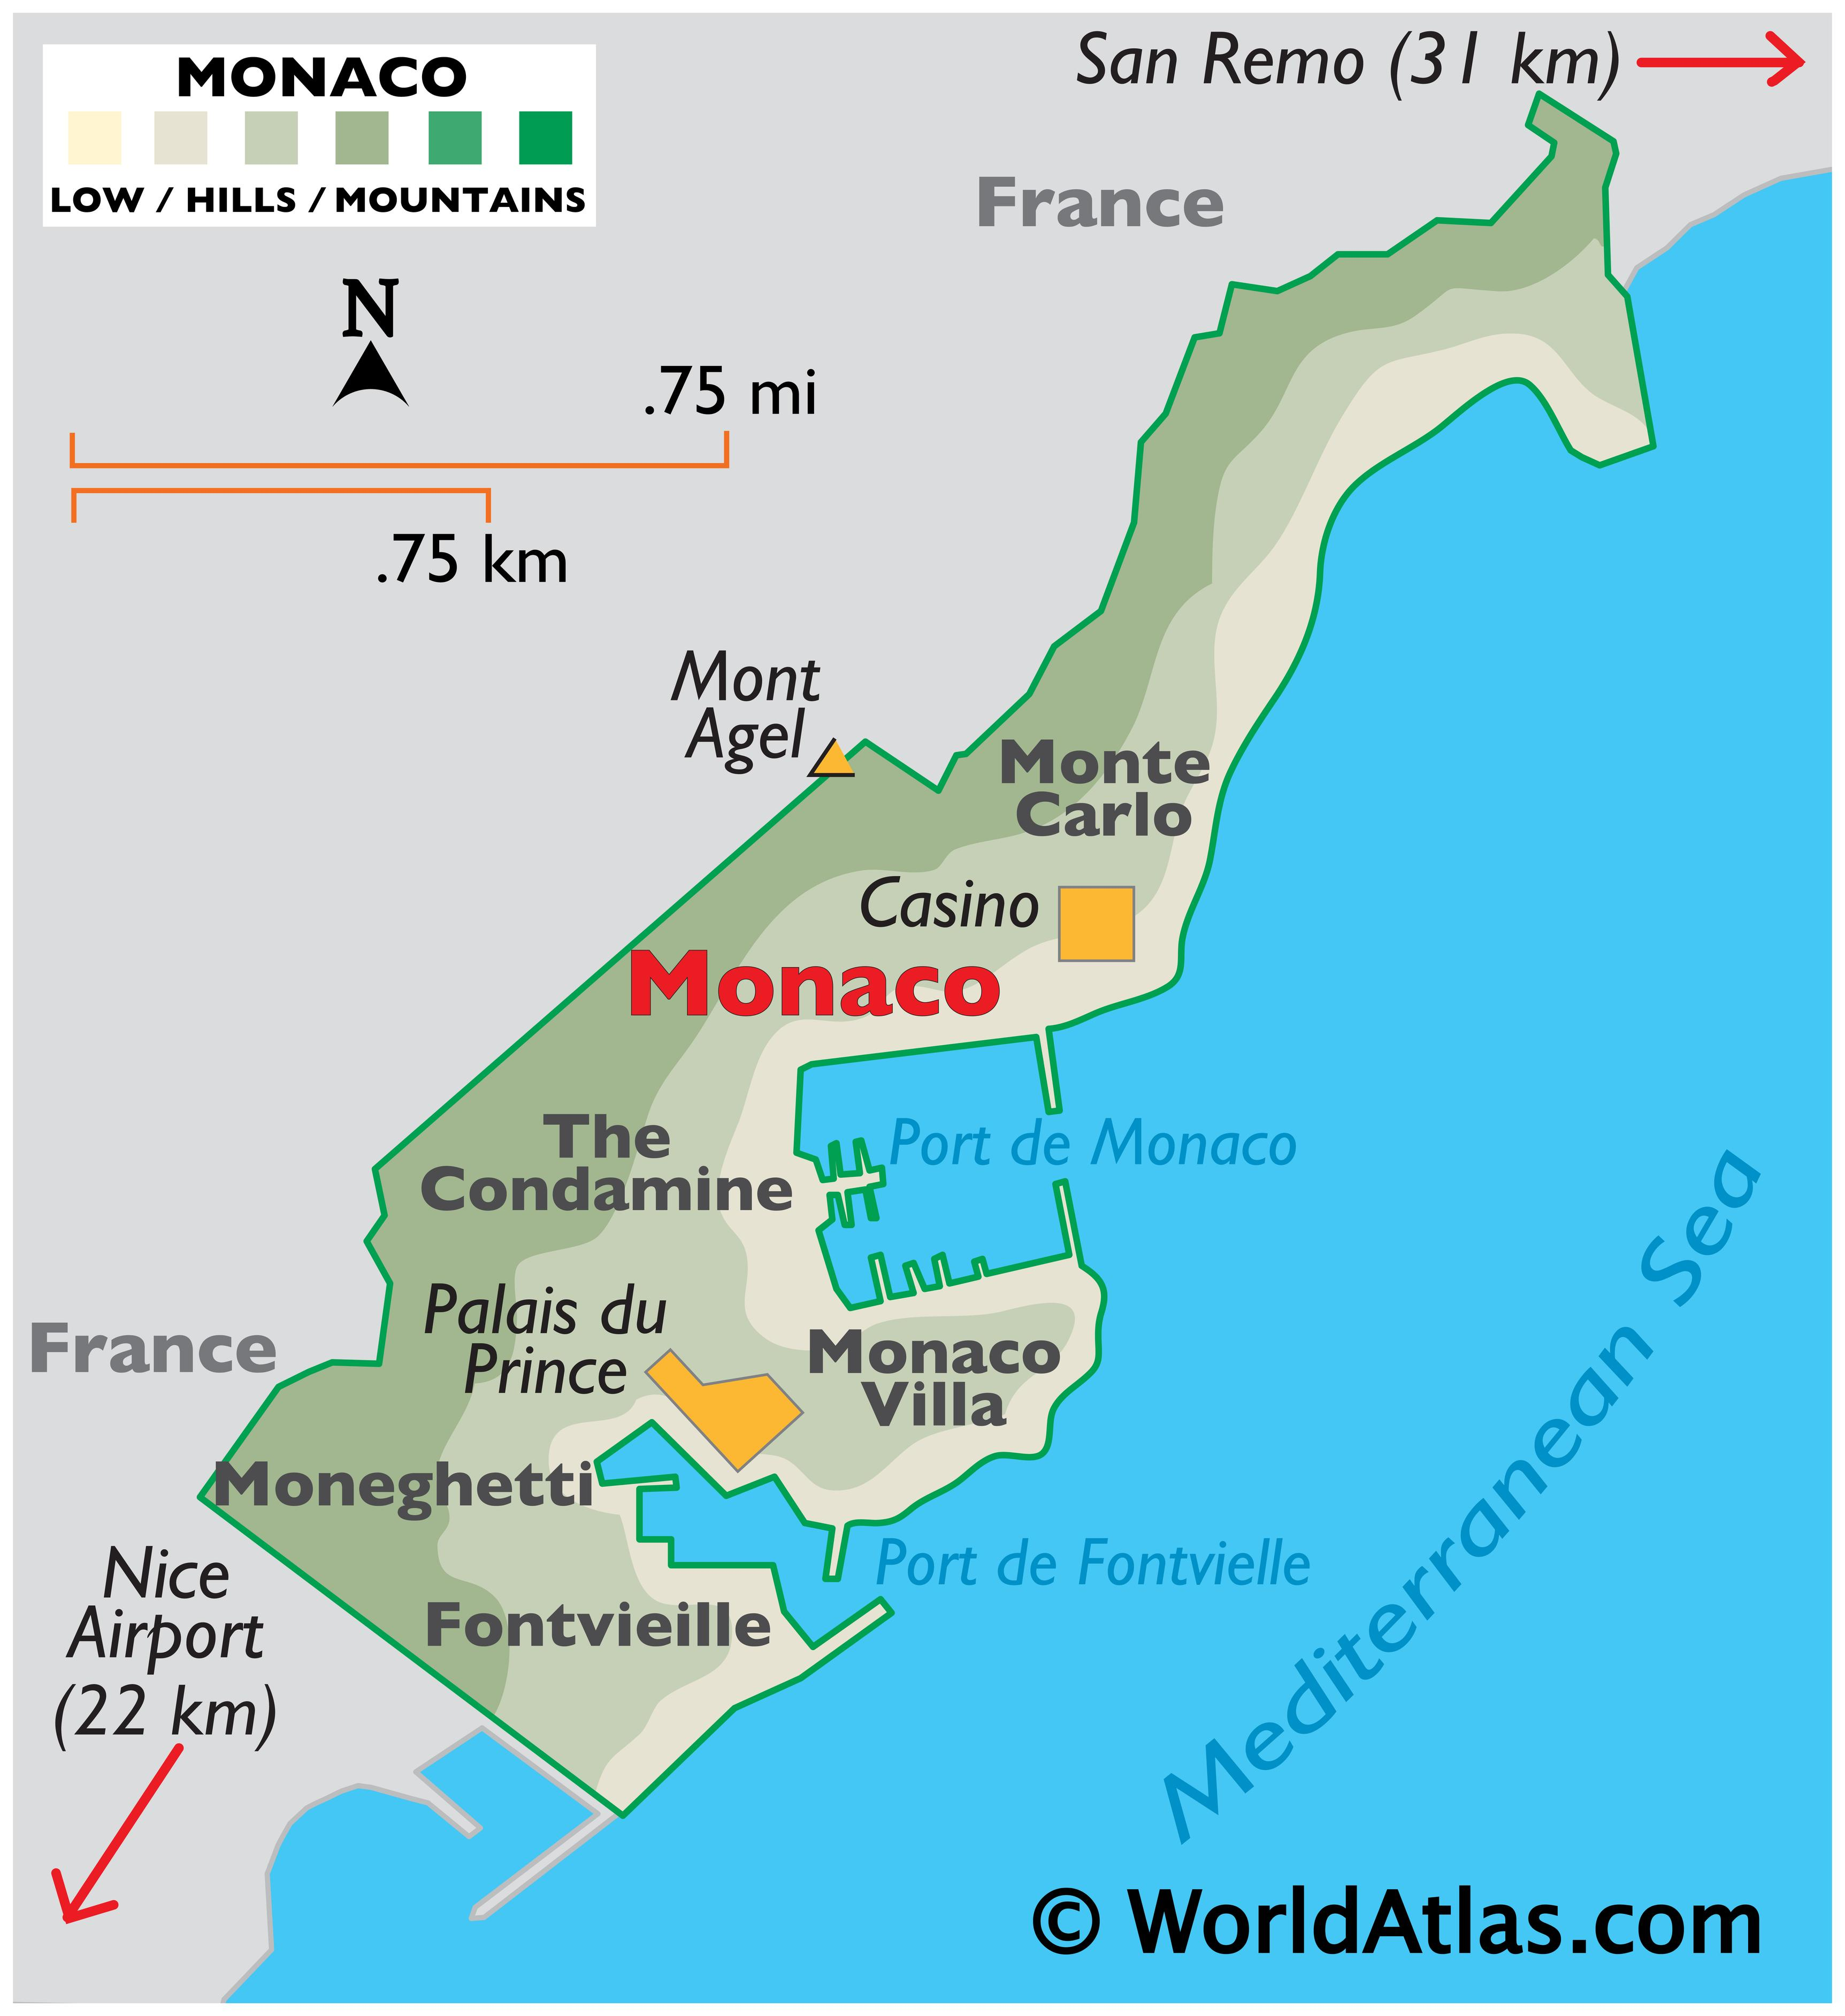 Physical Map Monaco showing relief, coast, ports, important urban centres, the highest point of Mont Agel, and the Casino.